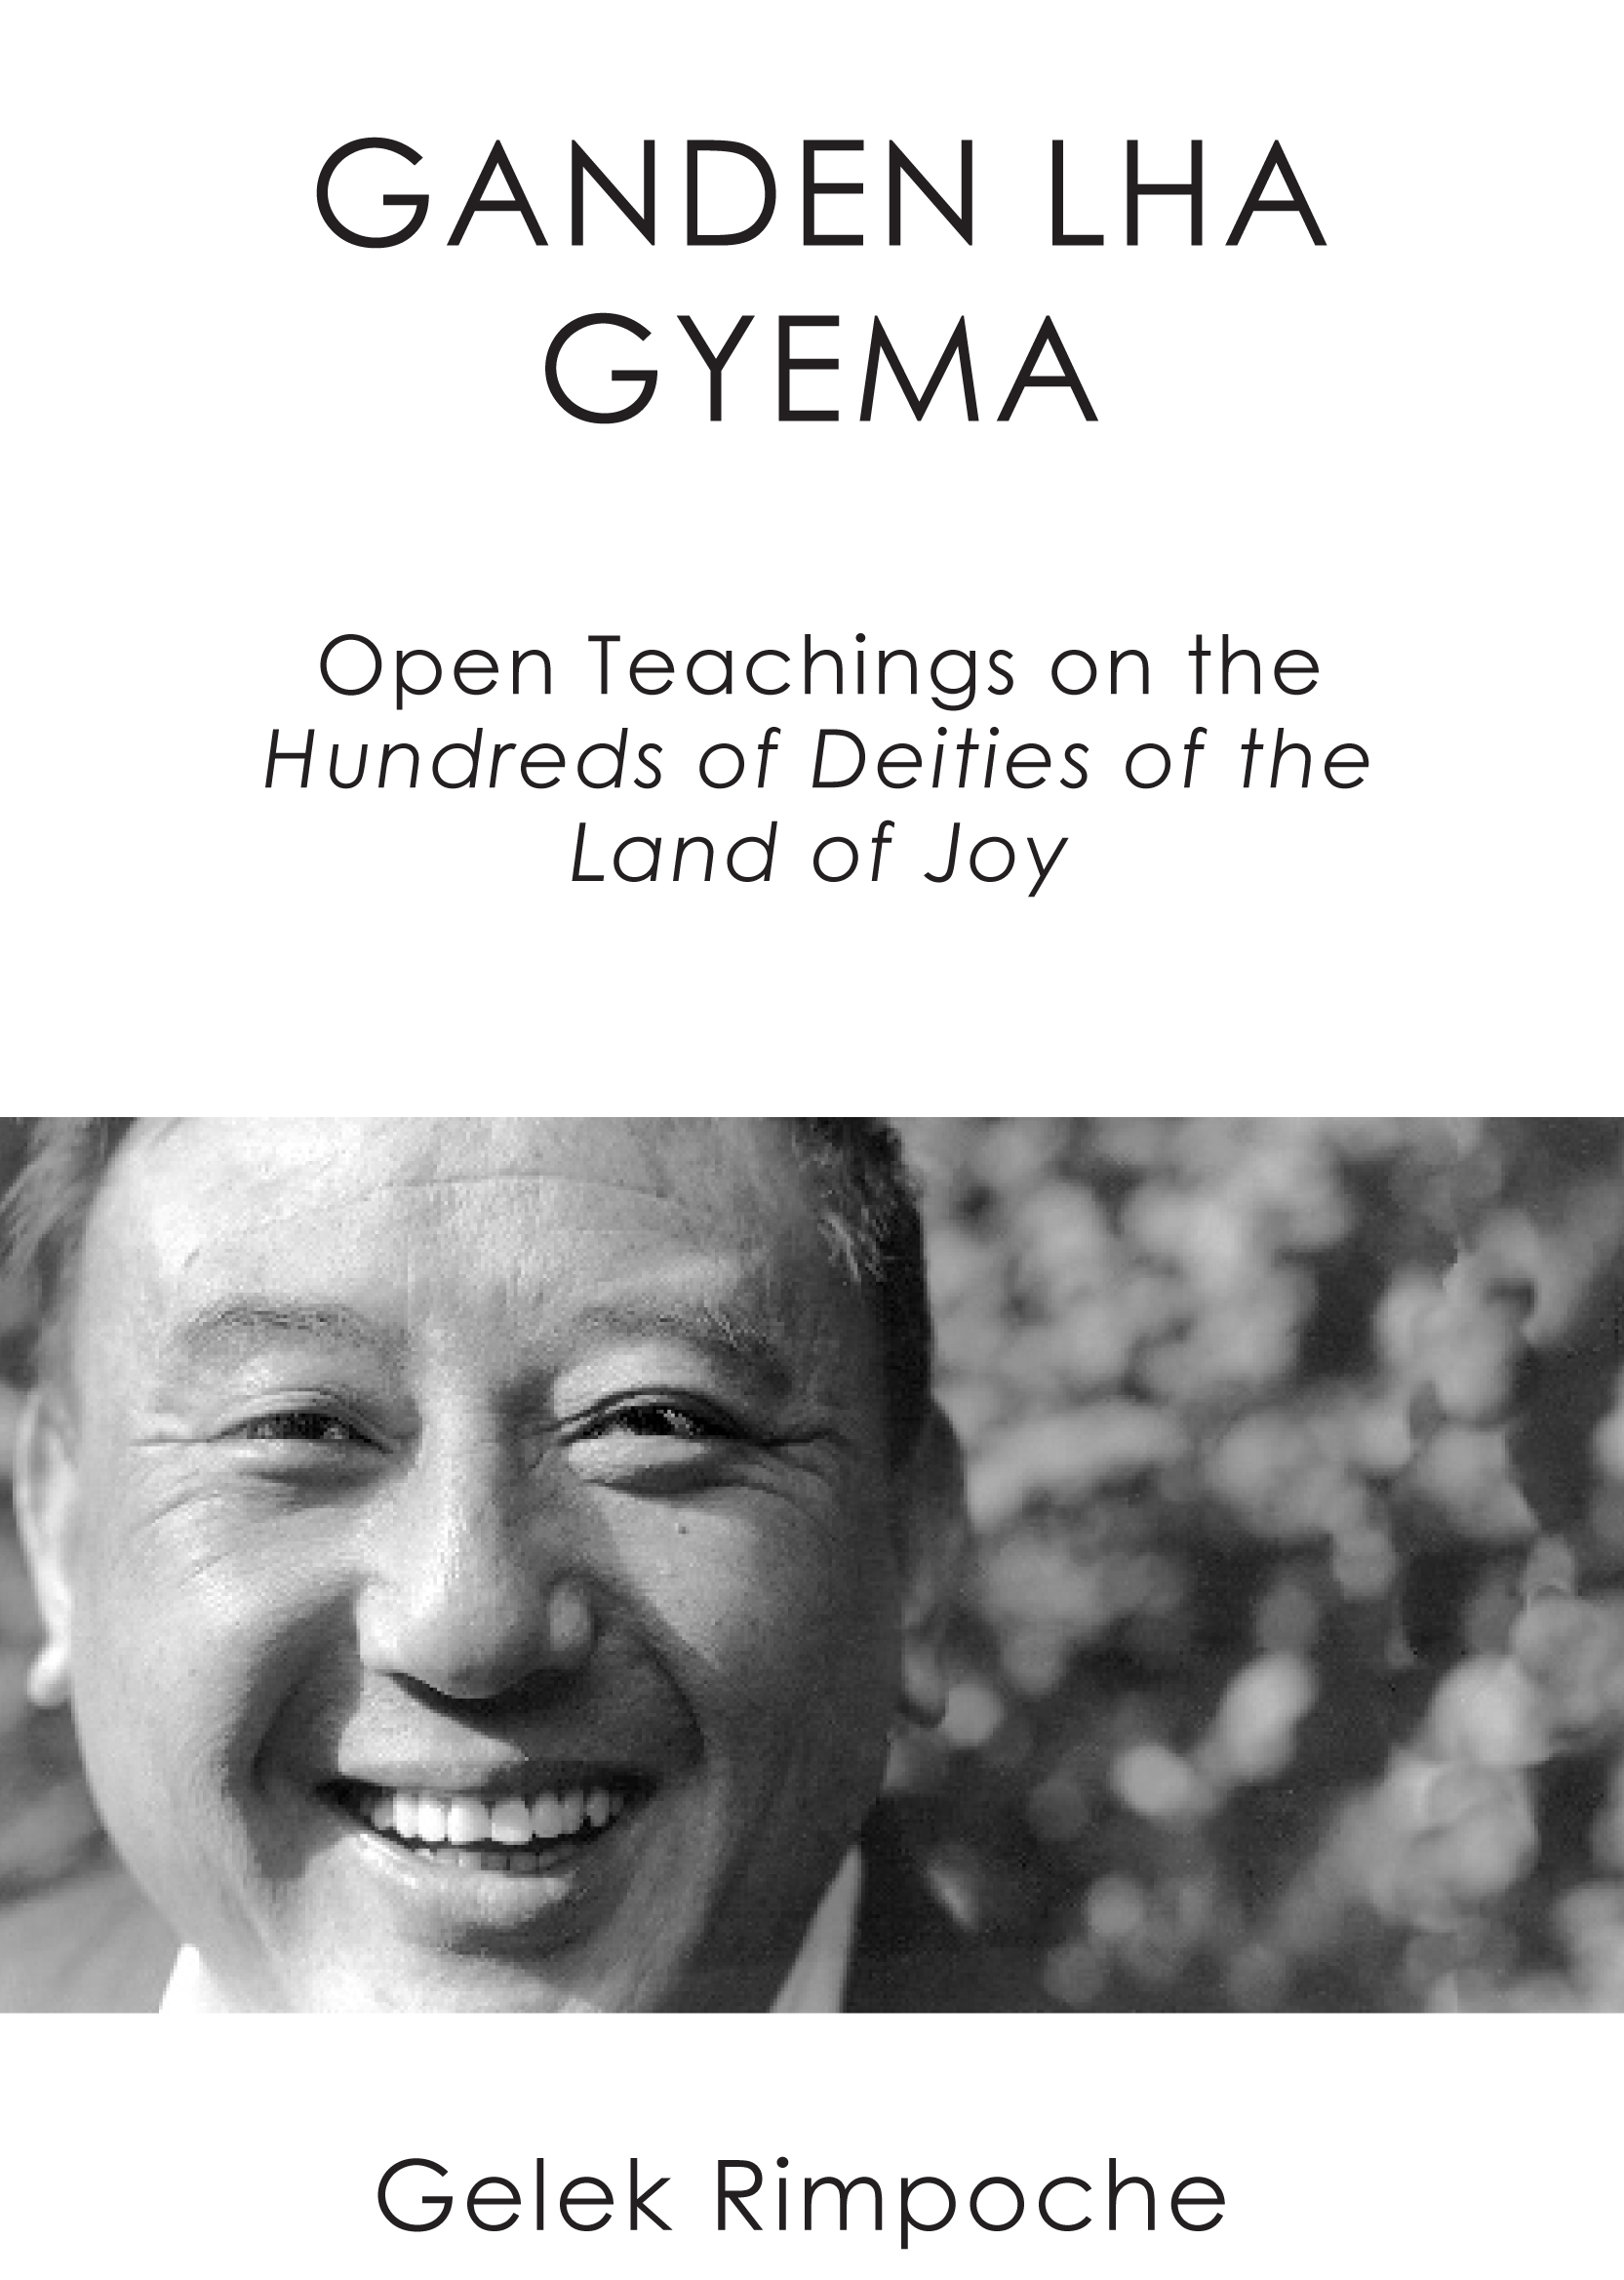 Ganden Lha Gyema Open Teachings